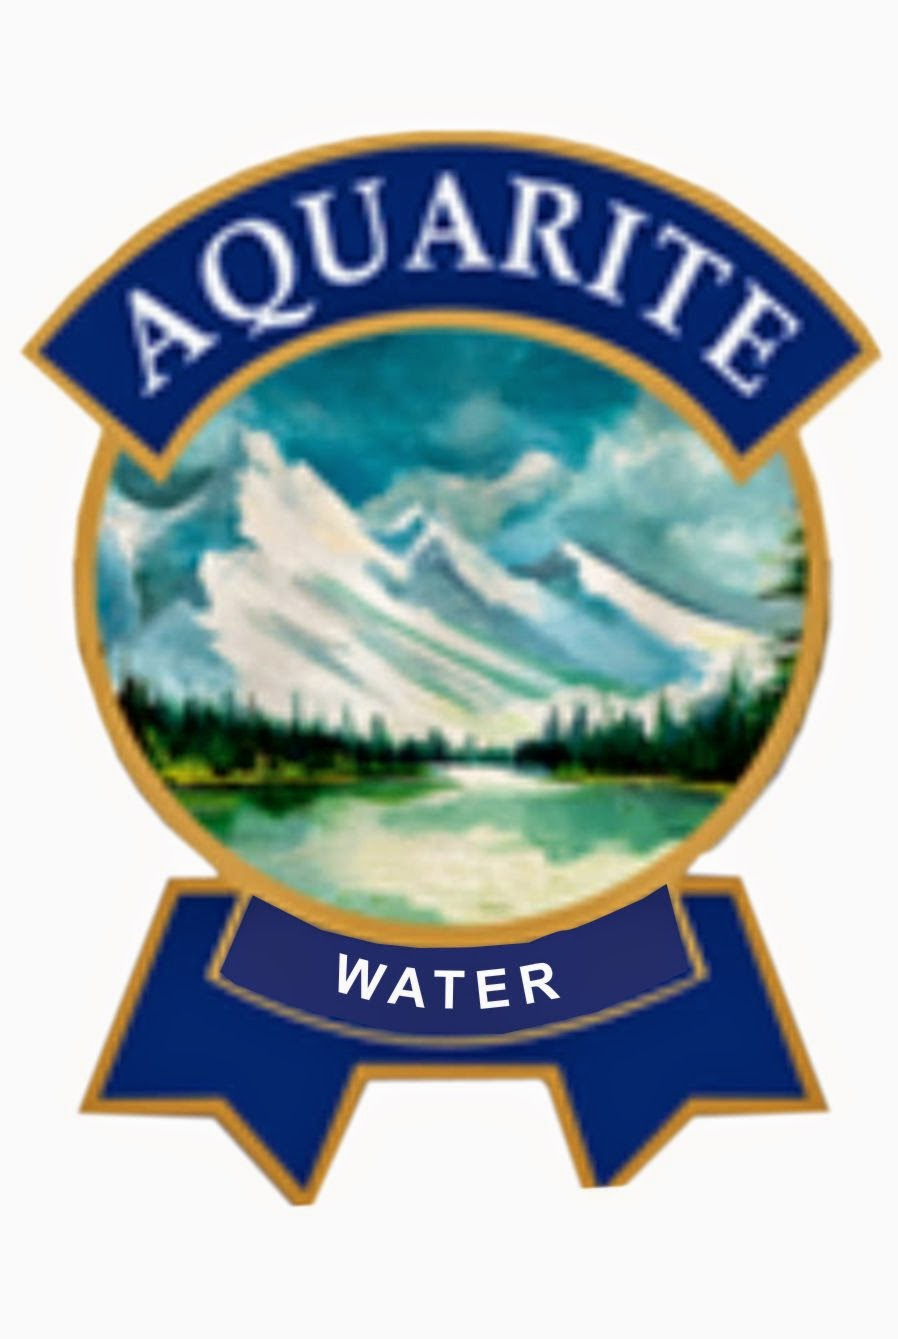 AQUARITE WATER